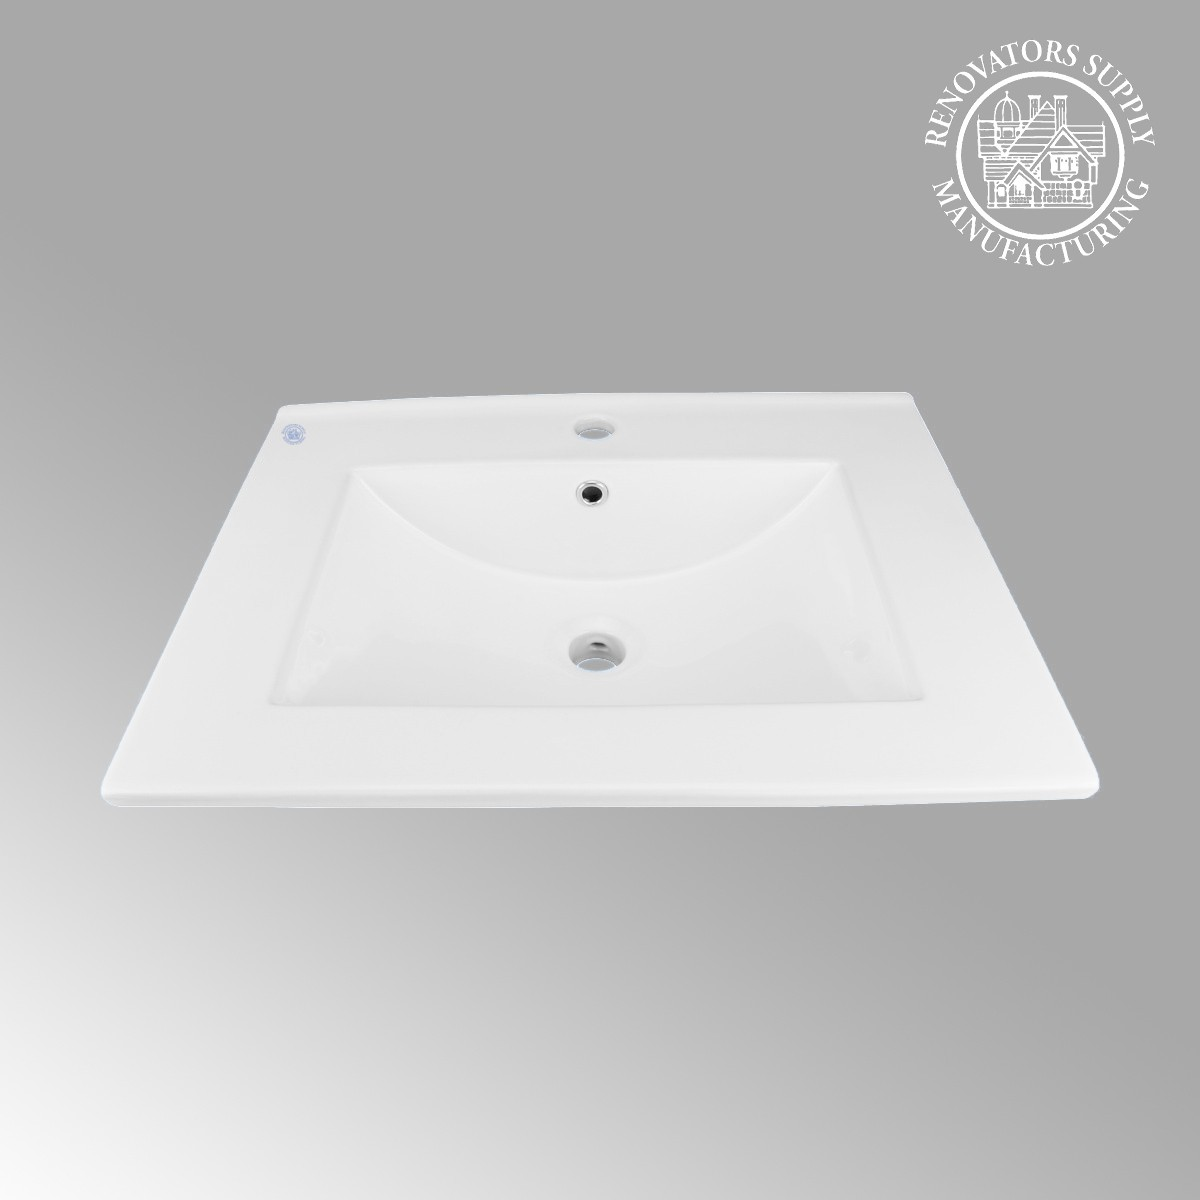 bathroom : Drop In Bathroom Sinks No Holes Sink Standard Size Lowes Vanity  Top For Menards Delightful Picture Of Unique Square Drop In Bathroom Sinks  Oval ...